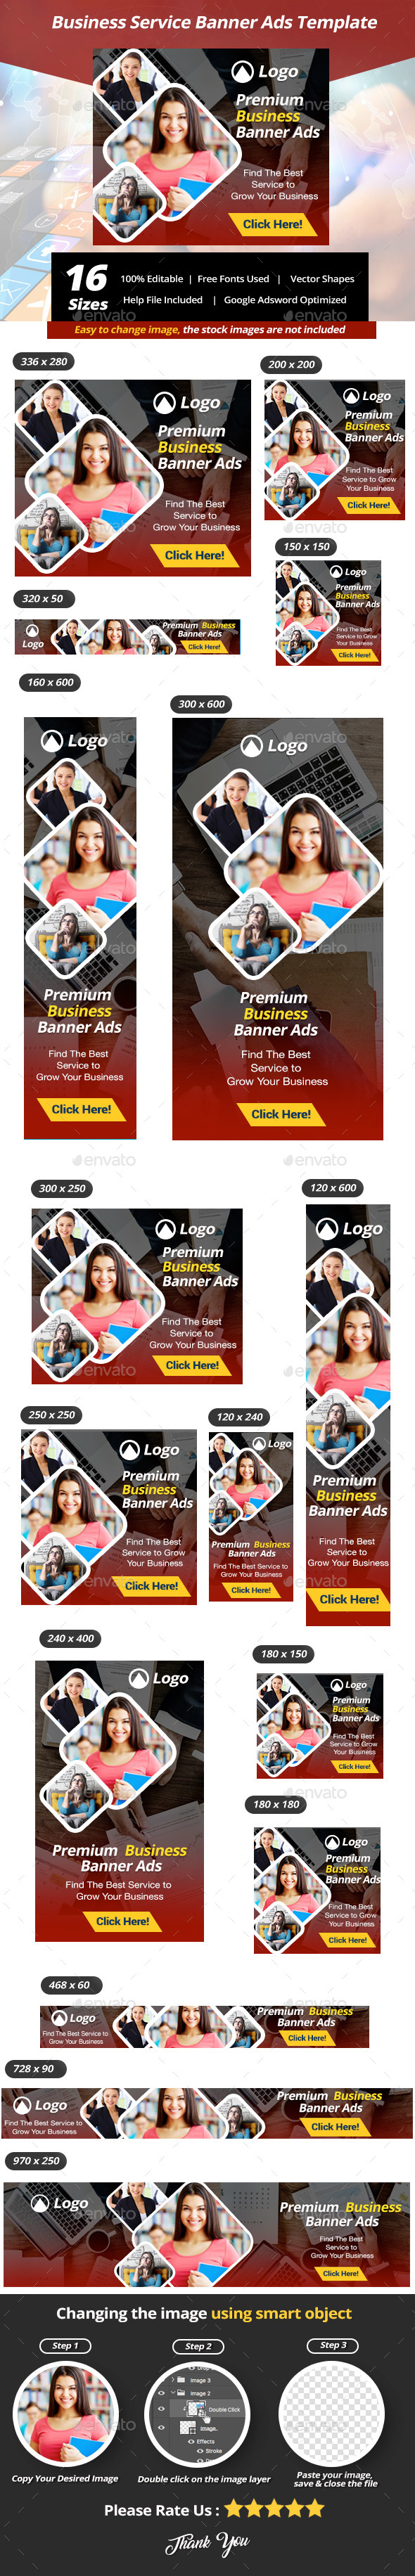 Business Service Banner Ads Template - Banners & Ads Web Elements